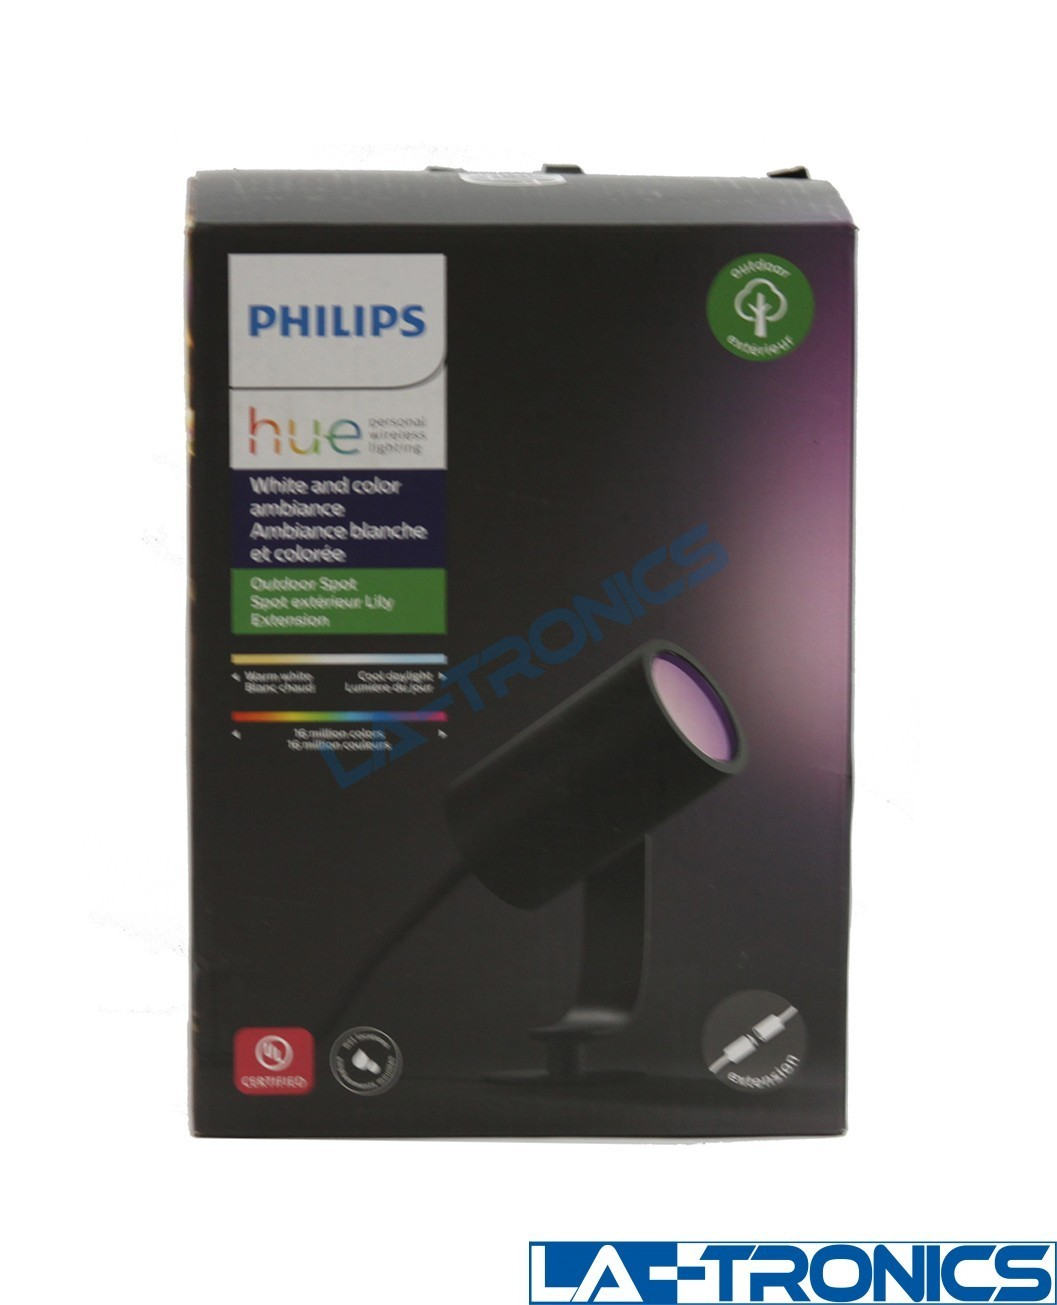 Philips 802074 Hue White & Color Ambiance Lily Outdoor Spot Light Extension Kit